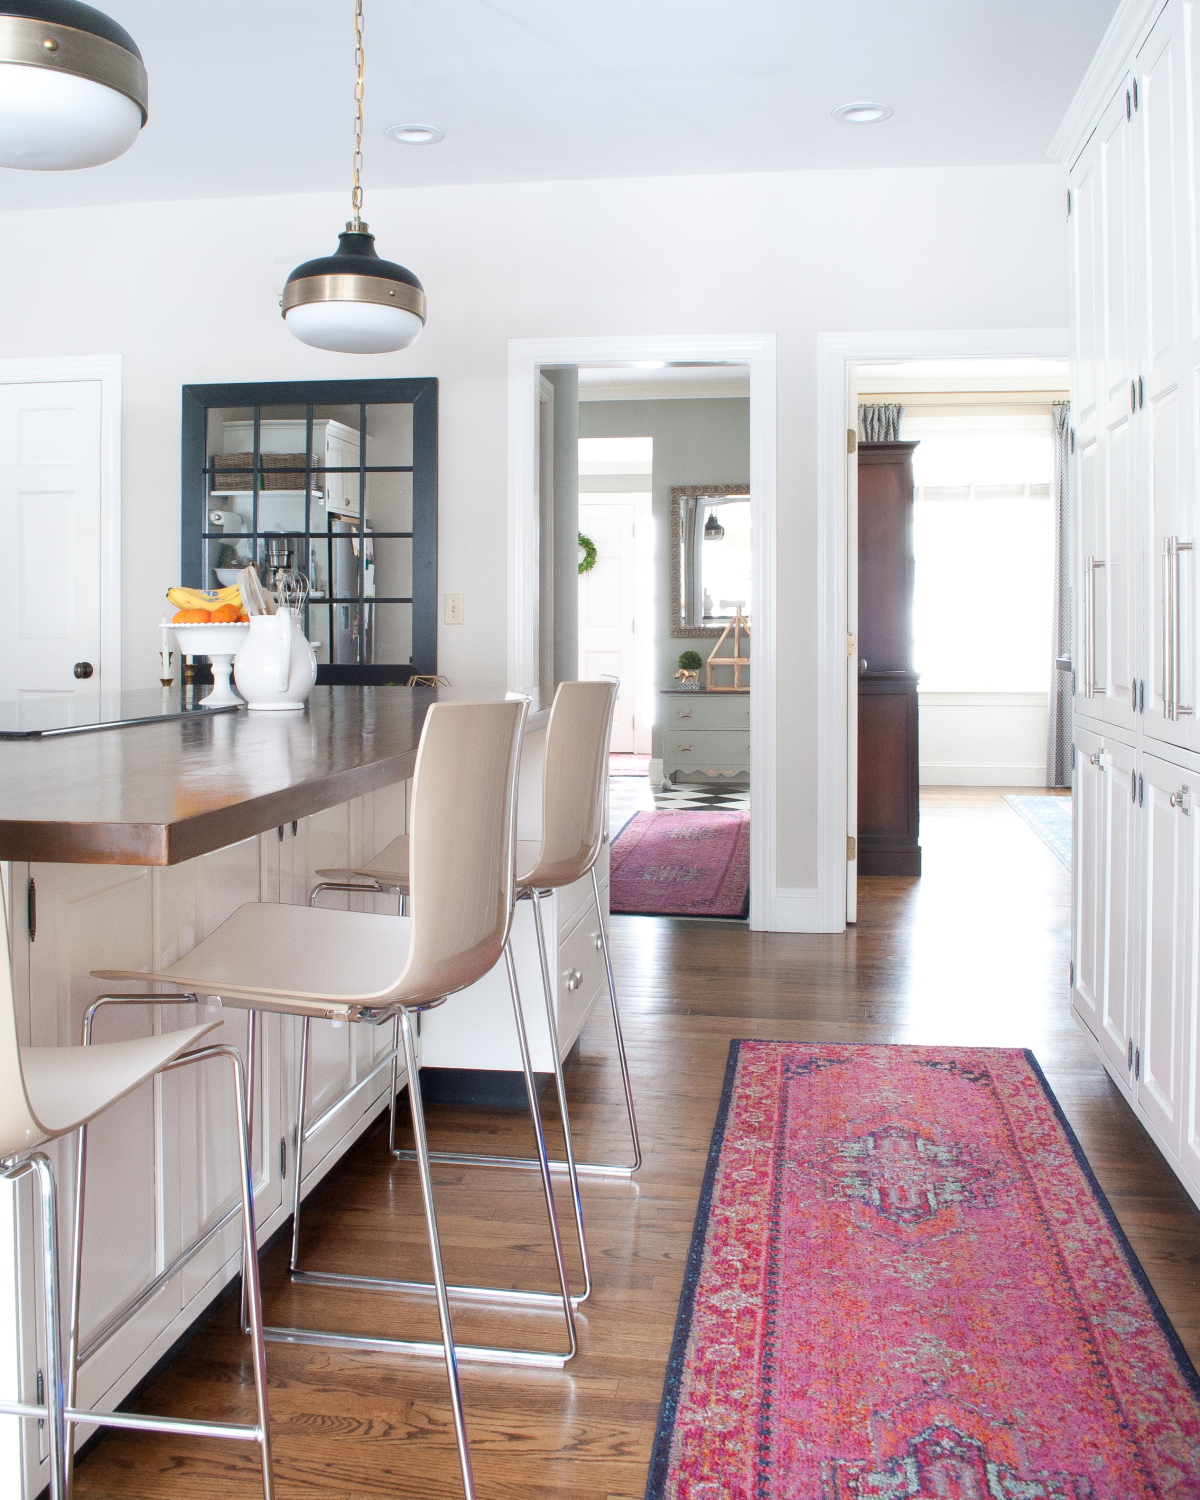 Get The Look Of A Vibrant Vintage Rug In The Kitchen Without The Price Tag,